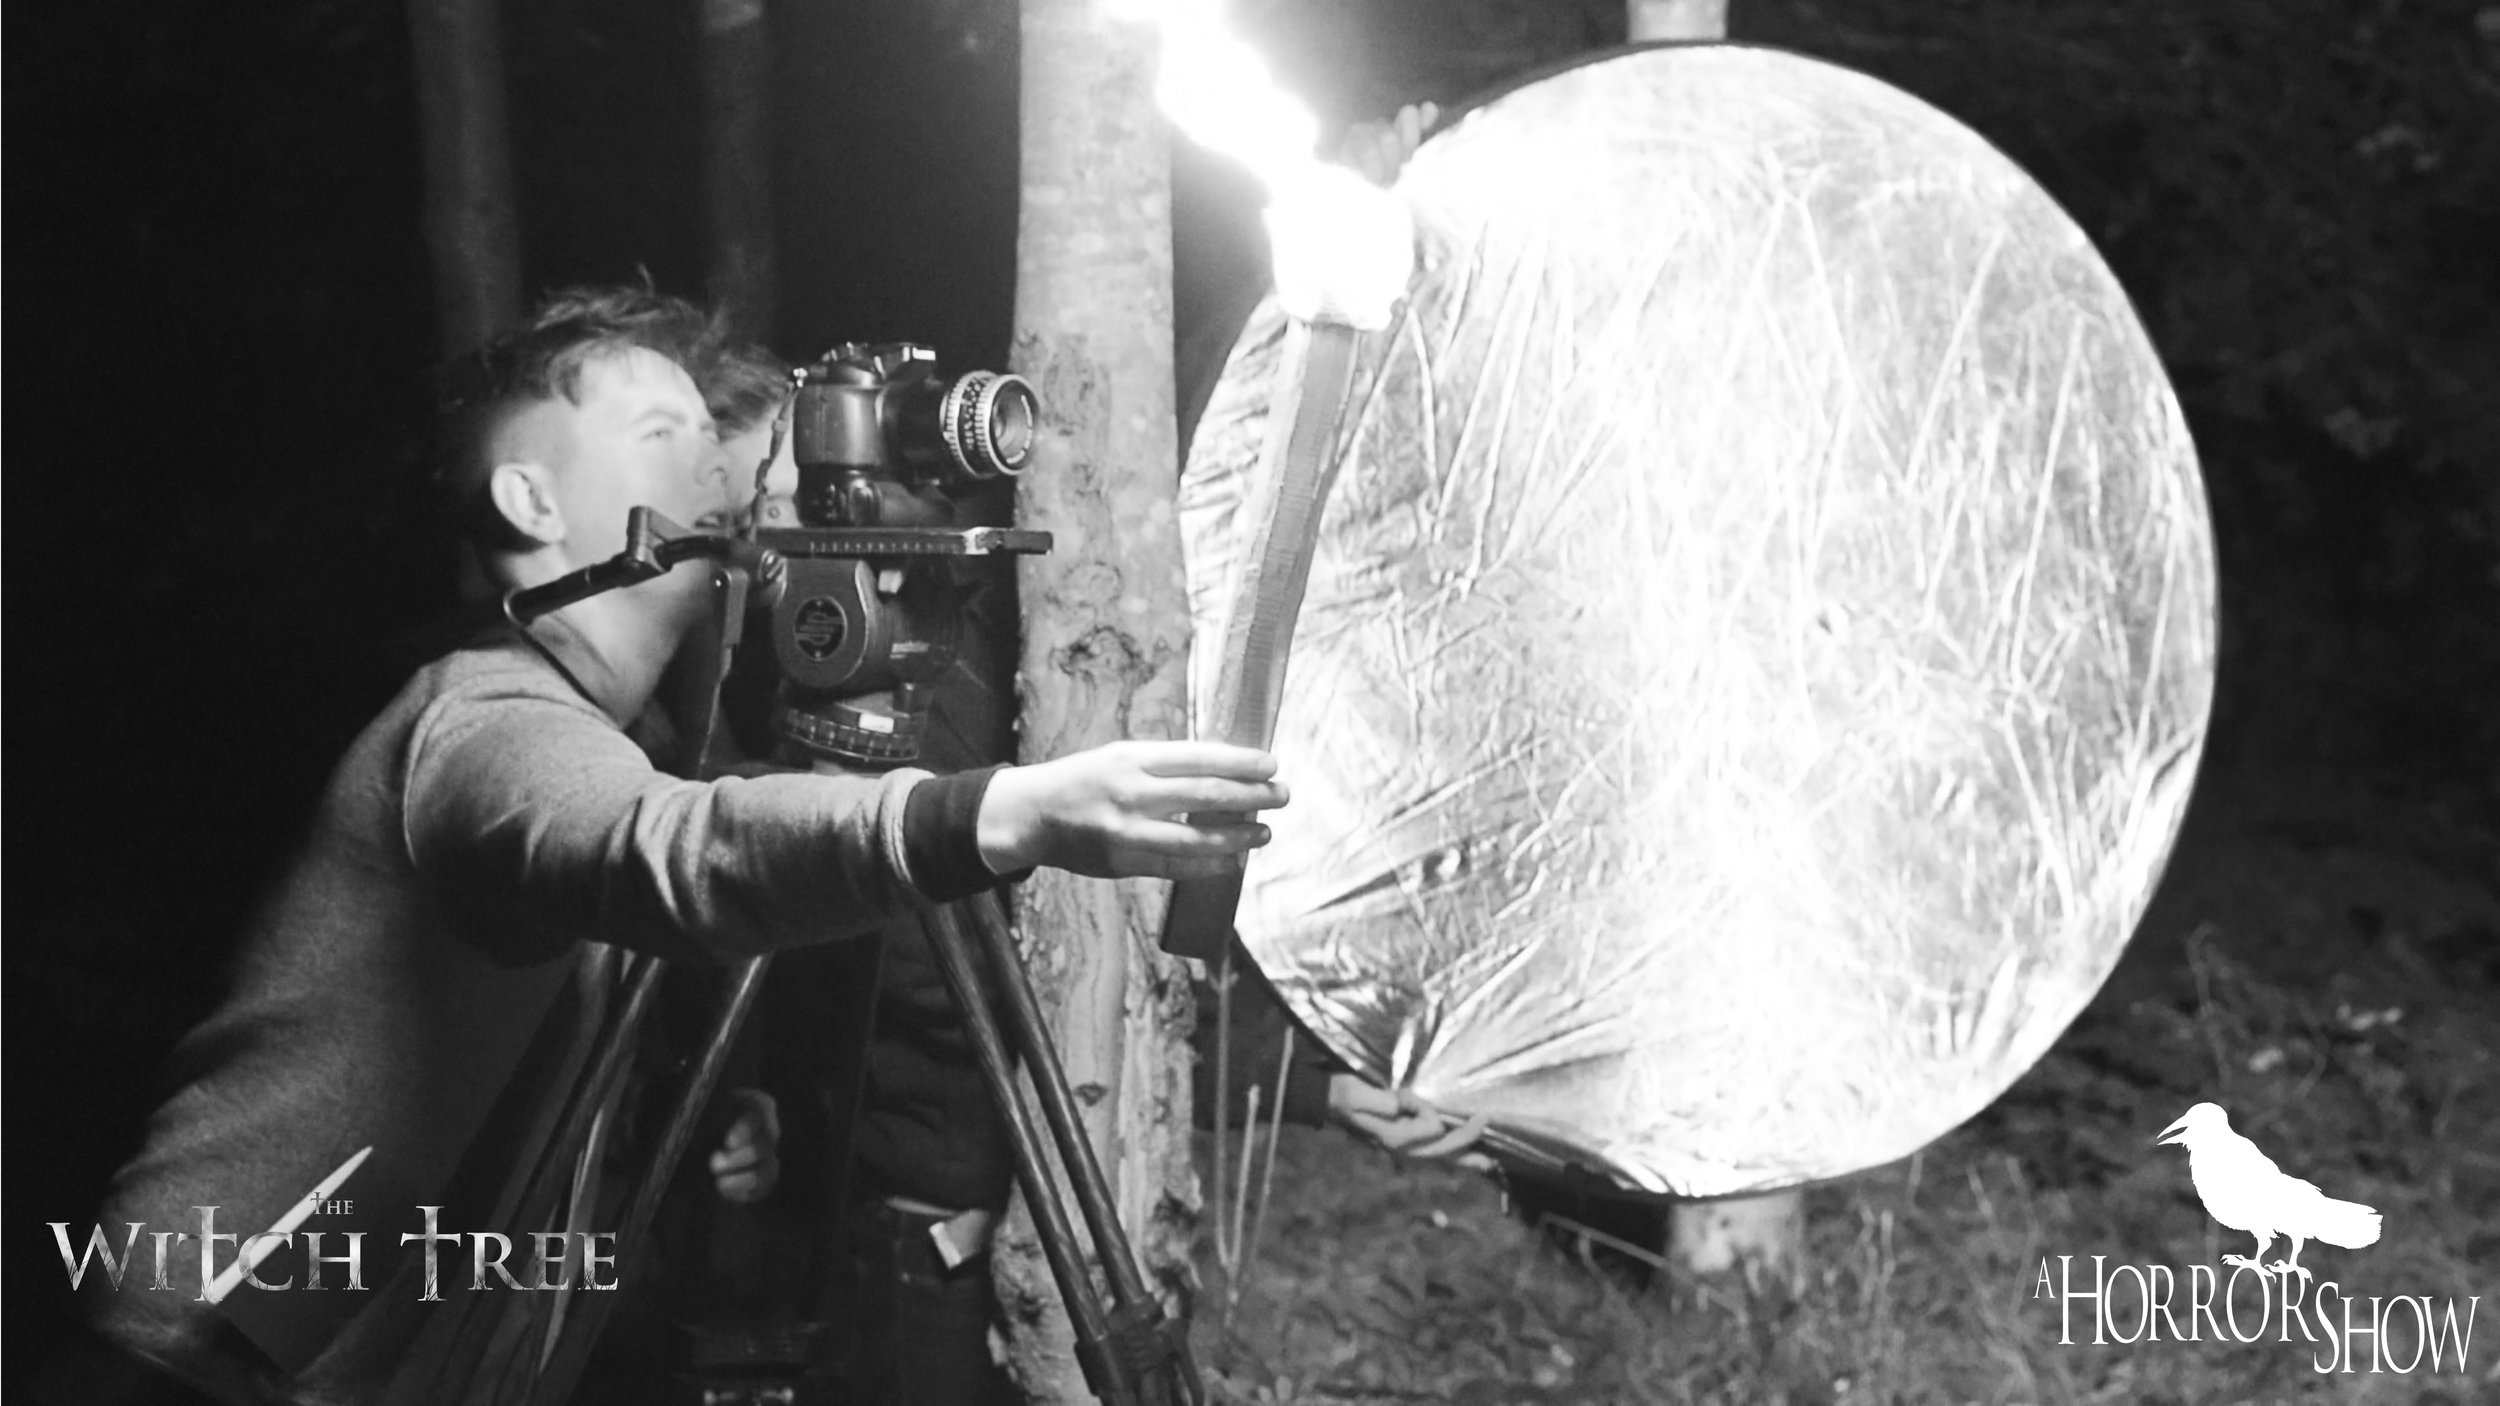 Director Lee Patrick Robinson on the set of The Witch Tree.